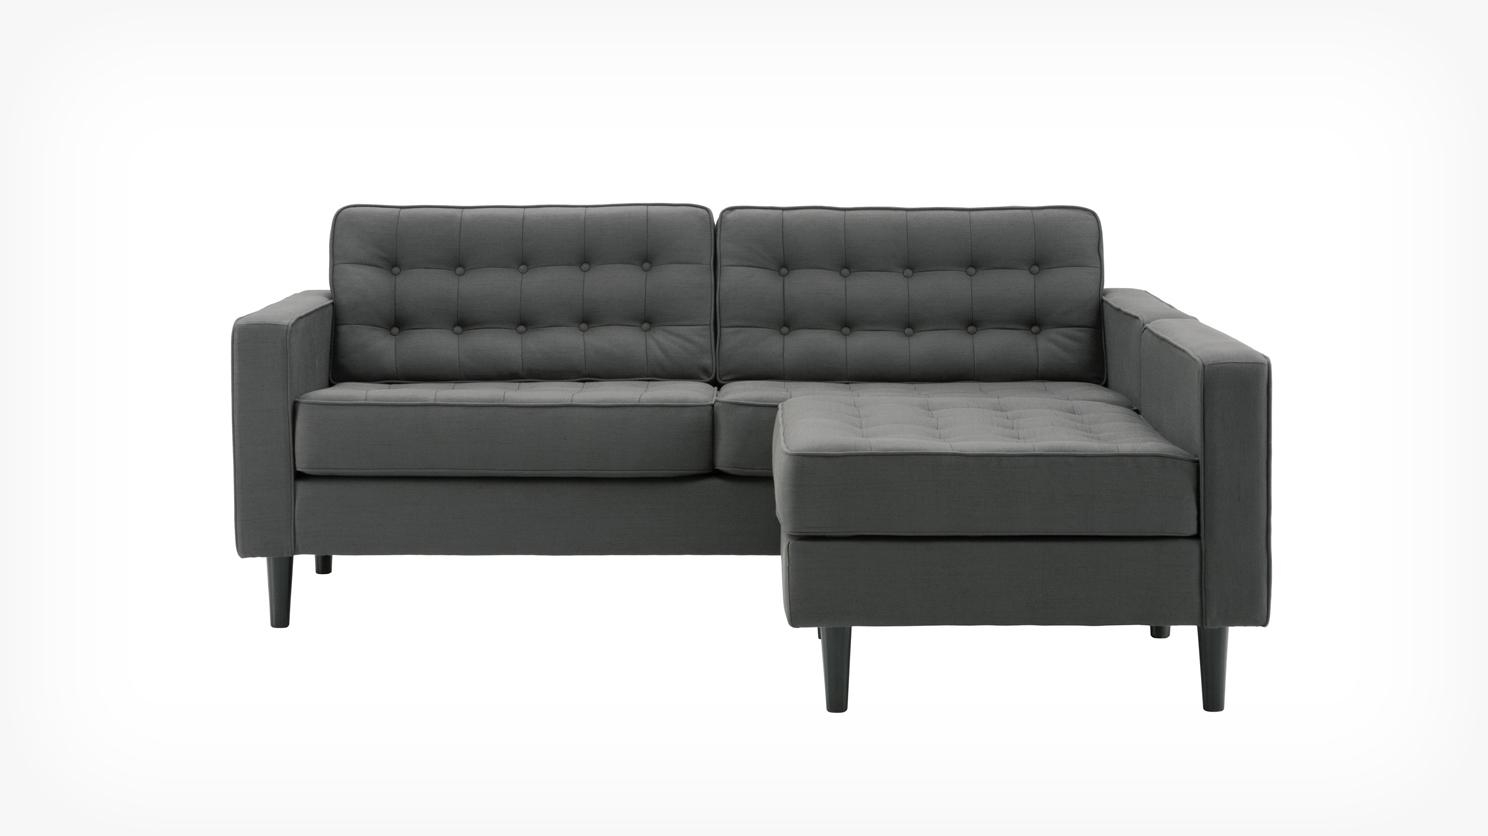 Eq3 | Reverie Apartment 2 Piece Sectional Sofa With Chaise – Fabric With Regard To Apartment Sectional Sofa With Chaise (View 2 of 15)